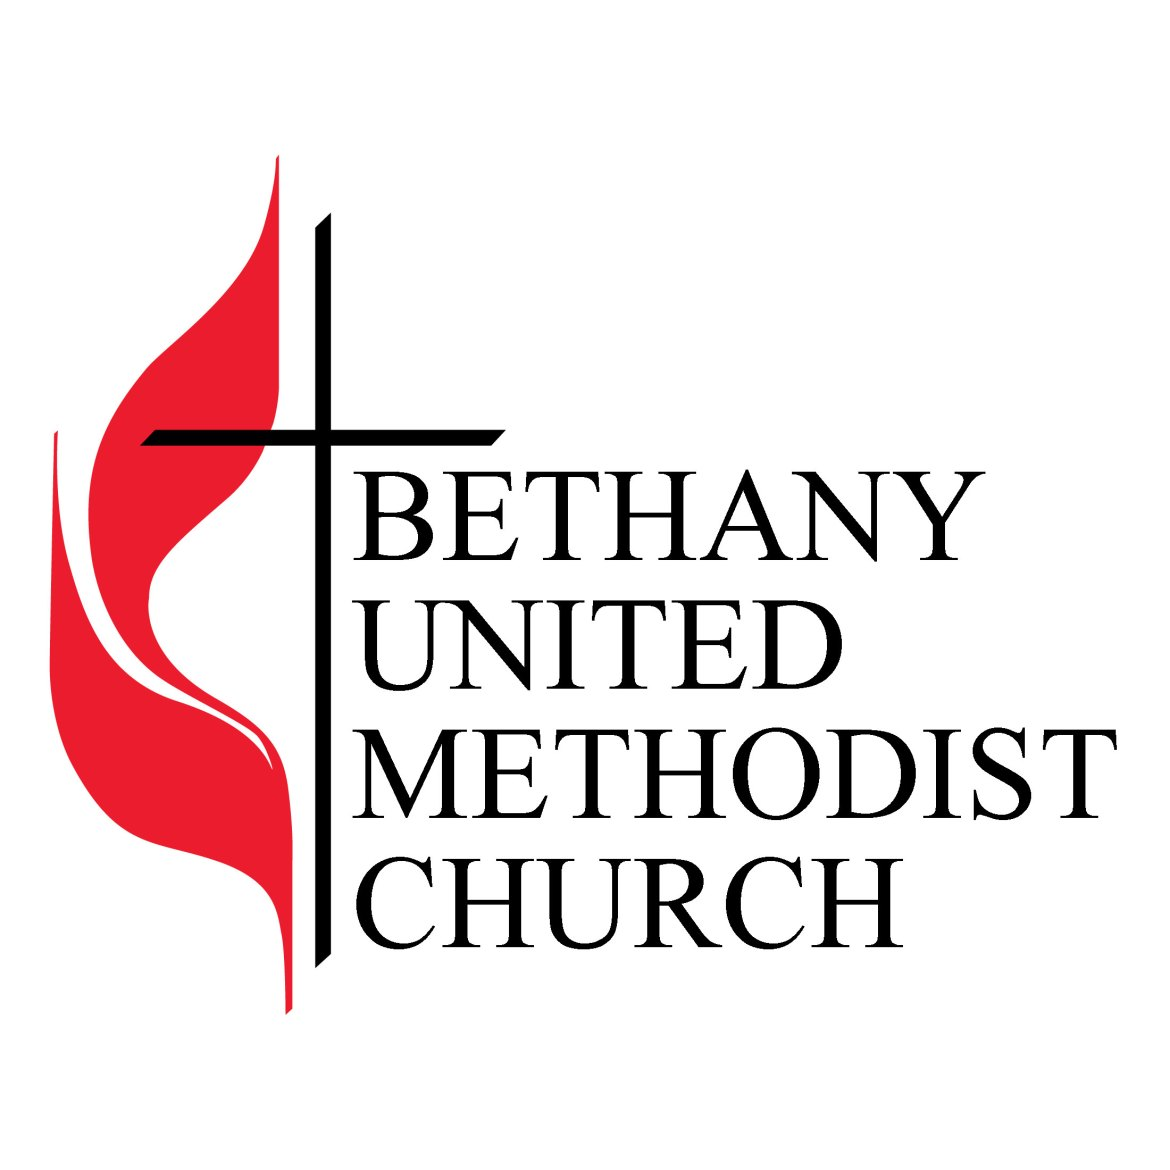 Bethany United Methodist Church